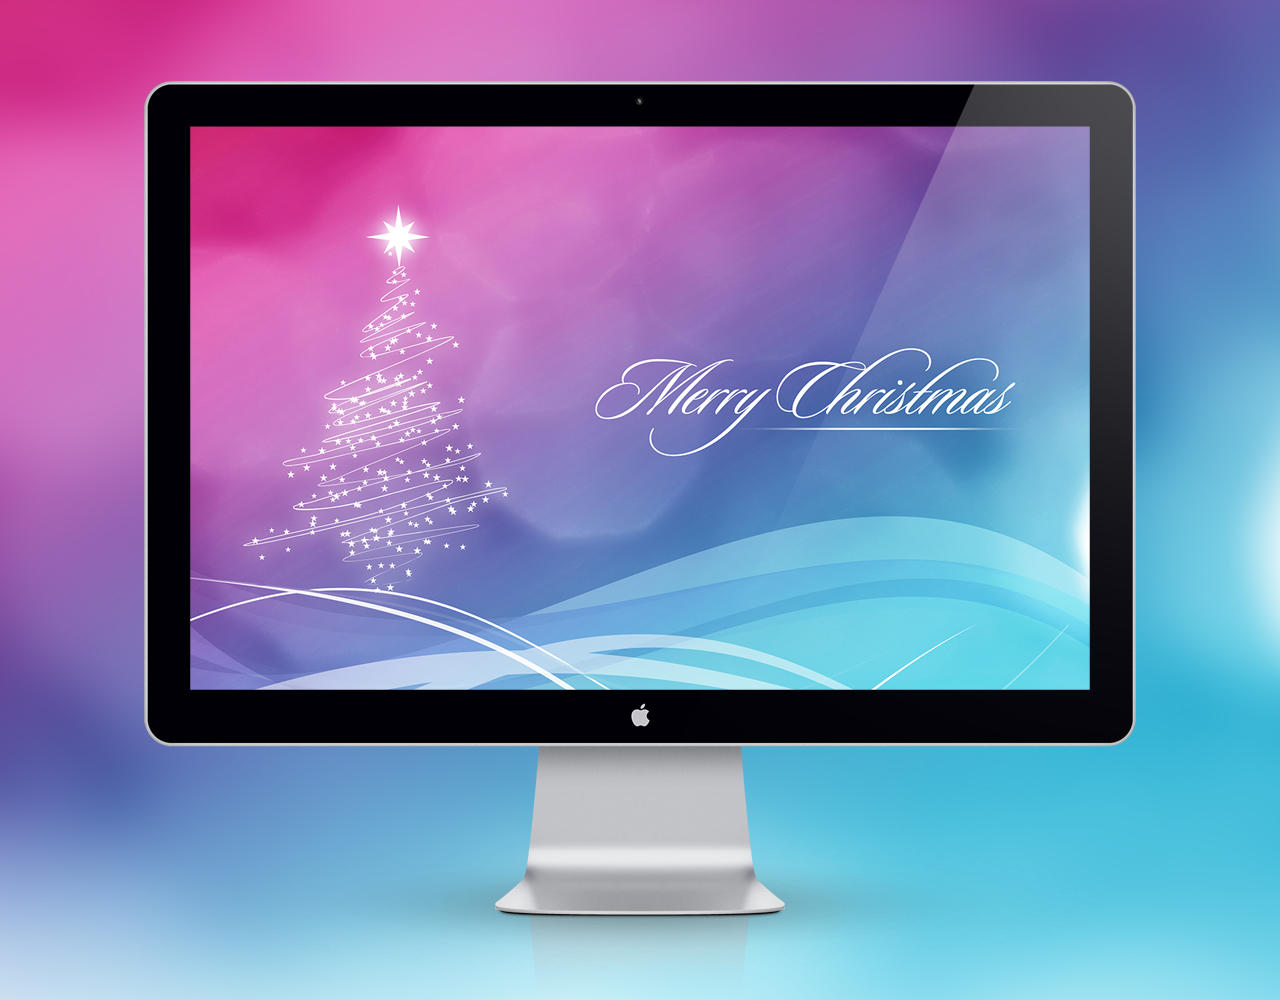 Christmas Wallpaper Pack 2010 by princepal